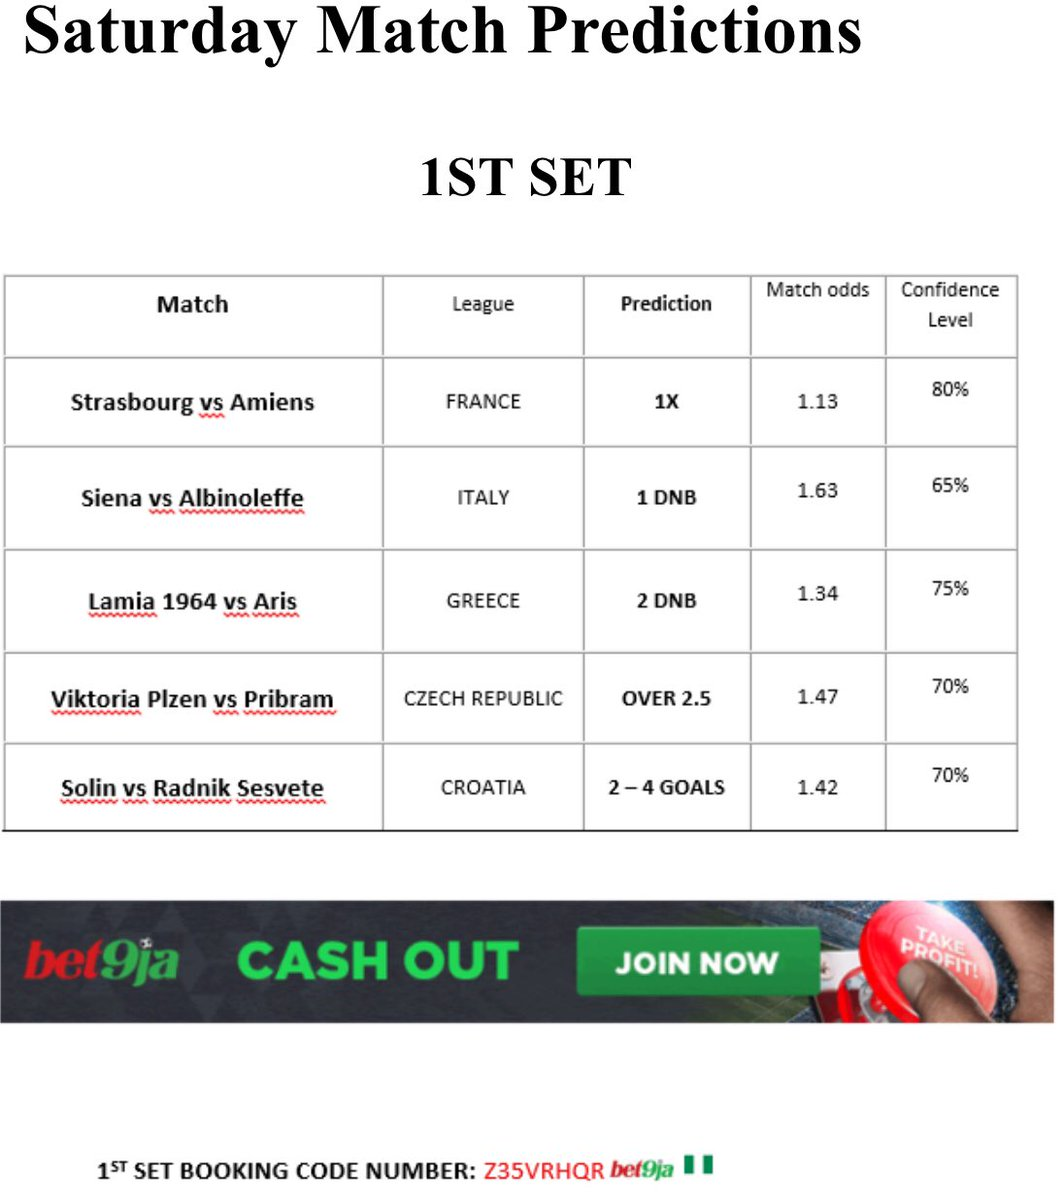 Top-up your stakes with @predictionkingsltd & cash-out 100% guaranteed,  yesterday 5odds sent to our customers was 100% successful. Guaranteed Predictions,100% Cash-Out #tgif #saturday #betting #code #stake #stakers #bang #accuracy #uel #fifa #adidas #yes #footballtips